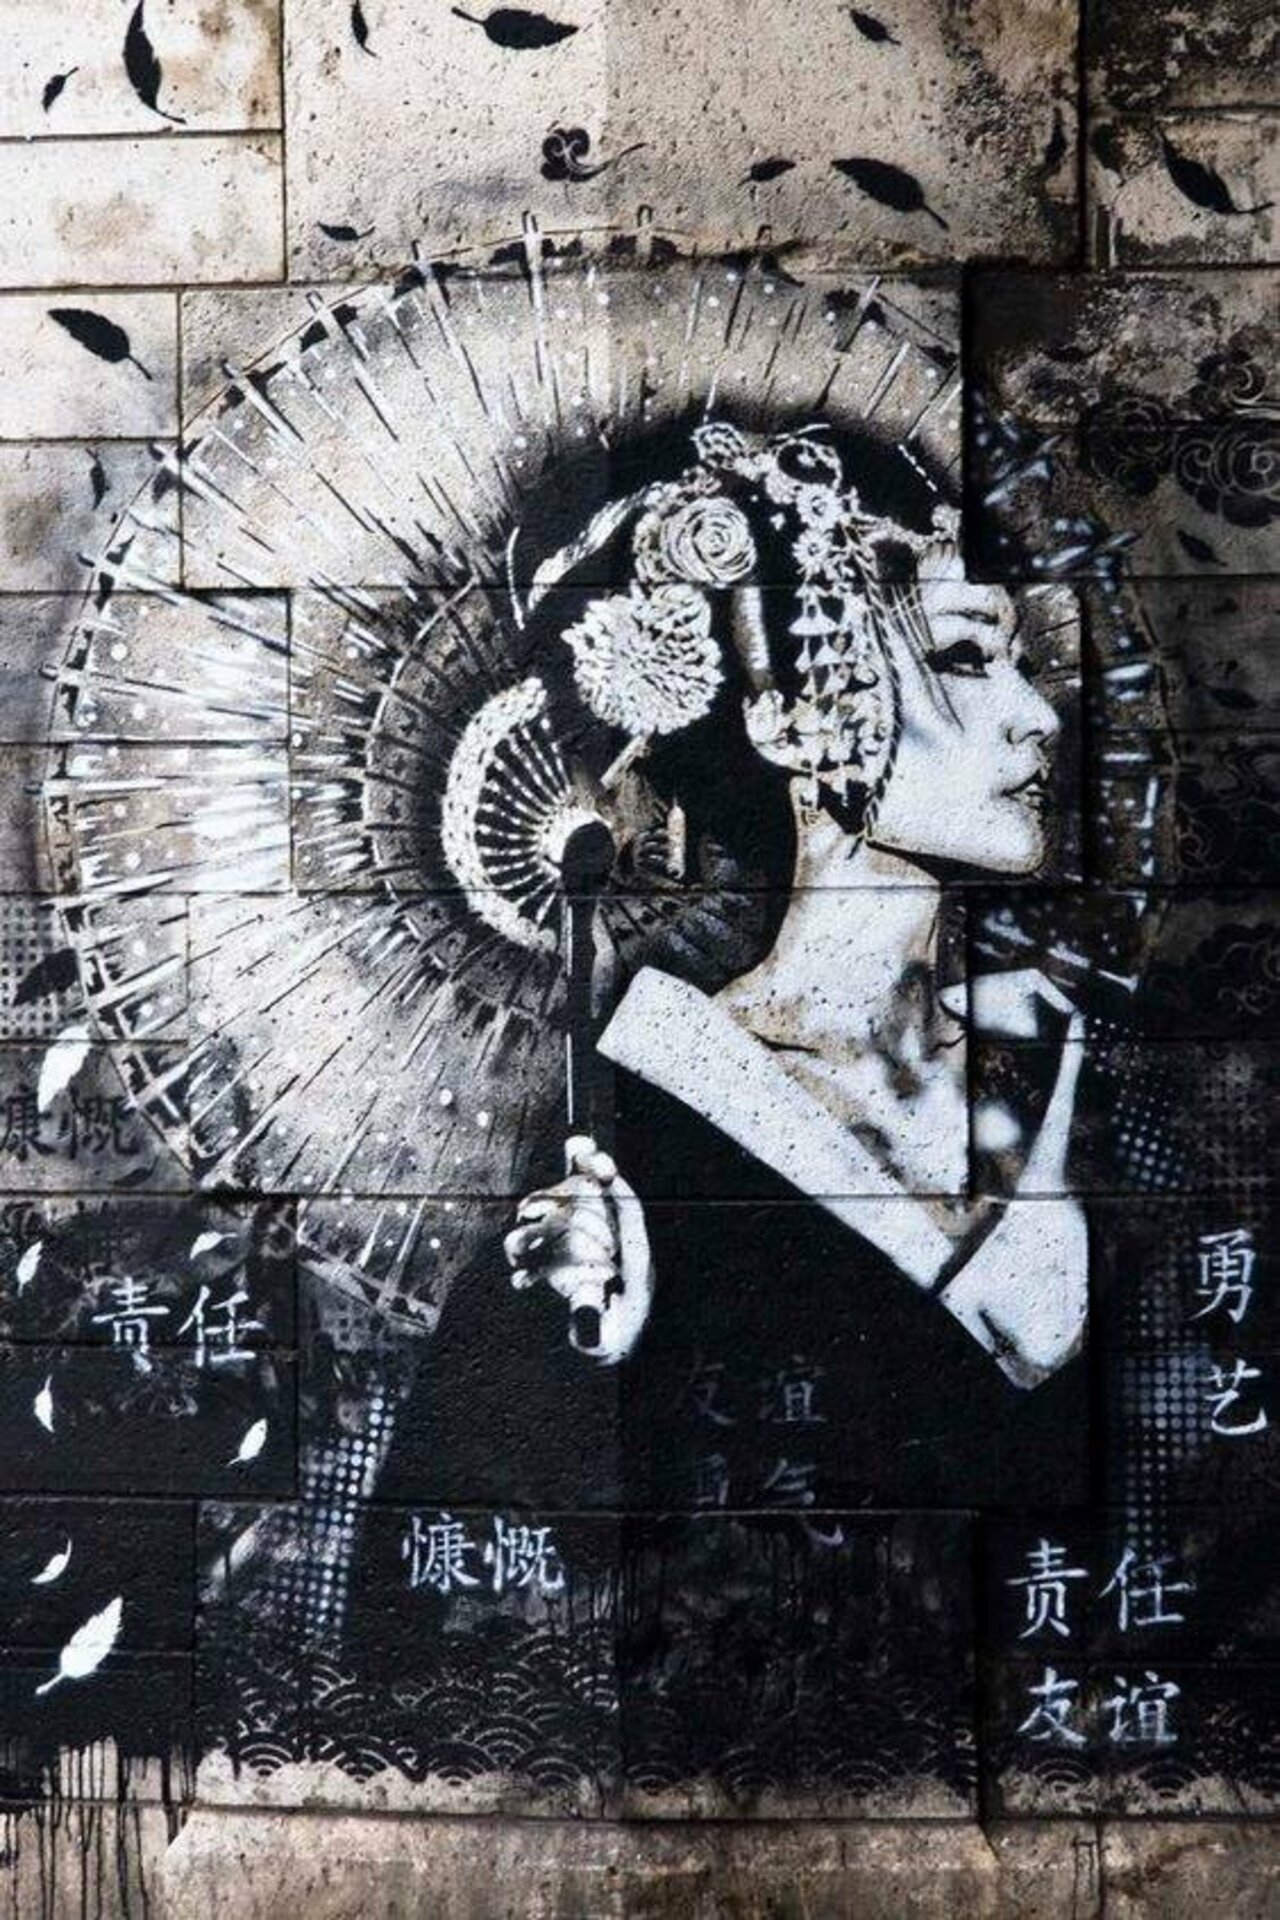 Elegant #Geisha – #Creative & #Beauty #StreetArt  – Be ▲rtist – Be ▲rt Magazine http://crwd.fr/2mfEy9c https://t.co/TdOscr6JHe